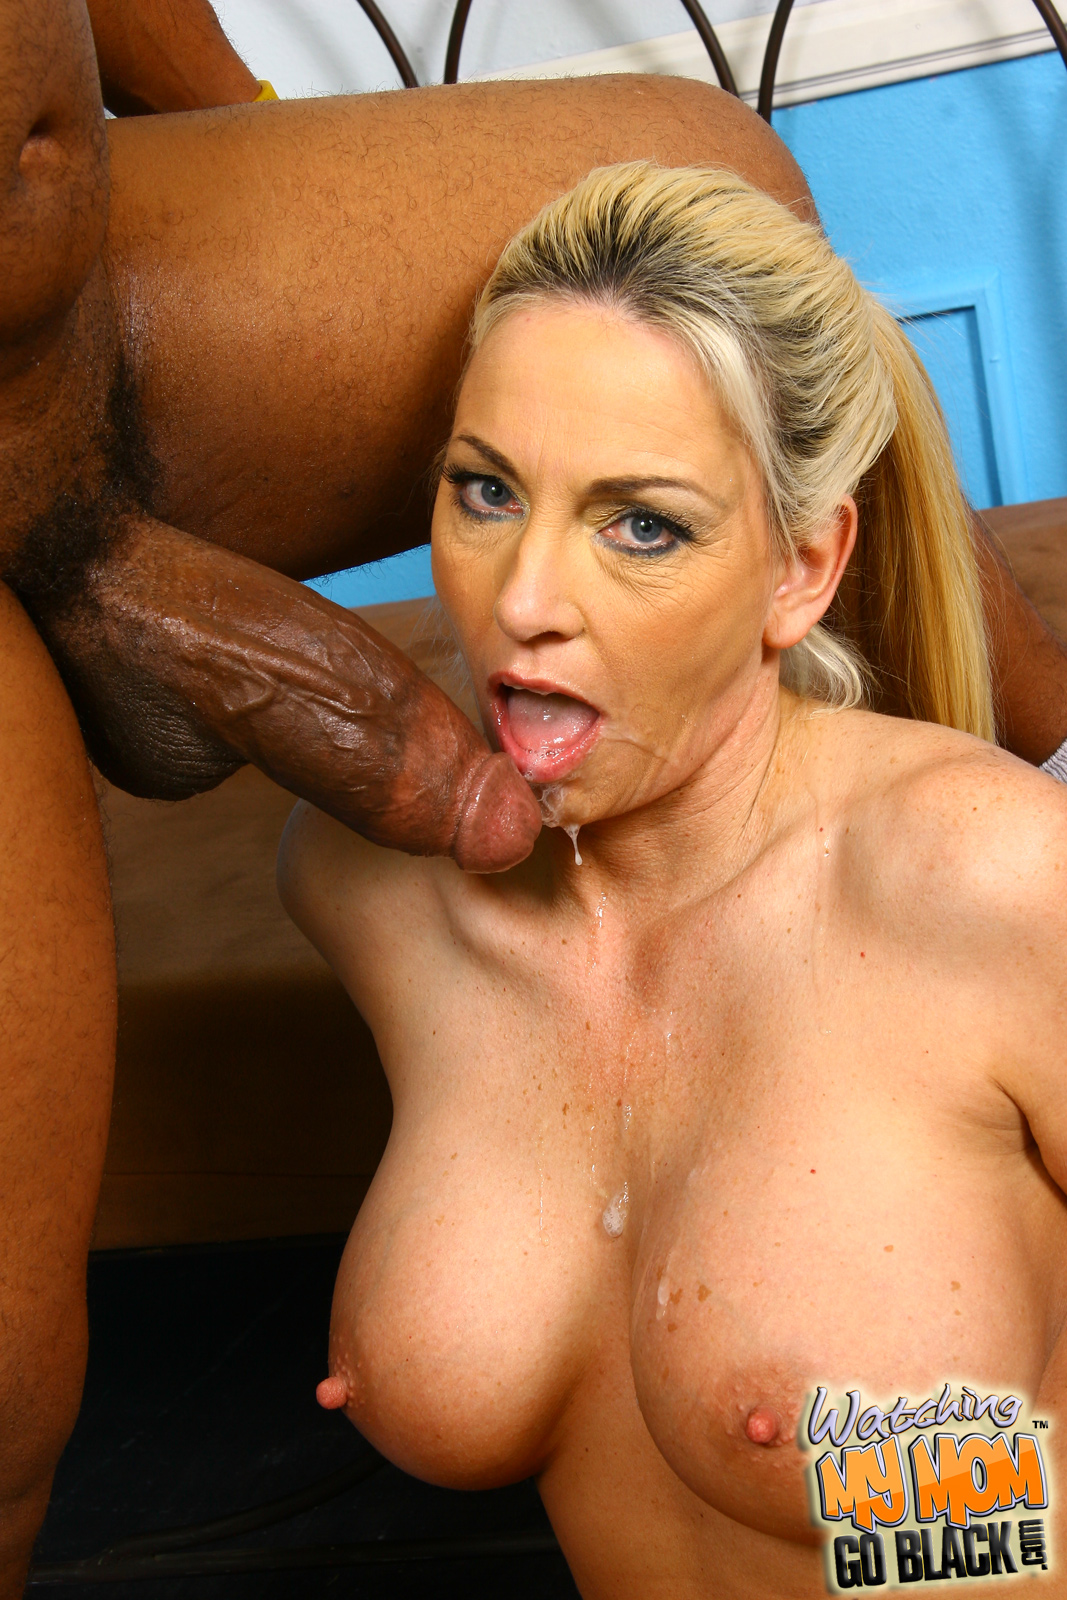 Black goes interracial milf movie older